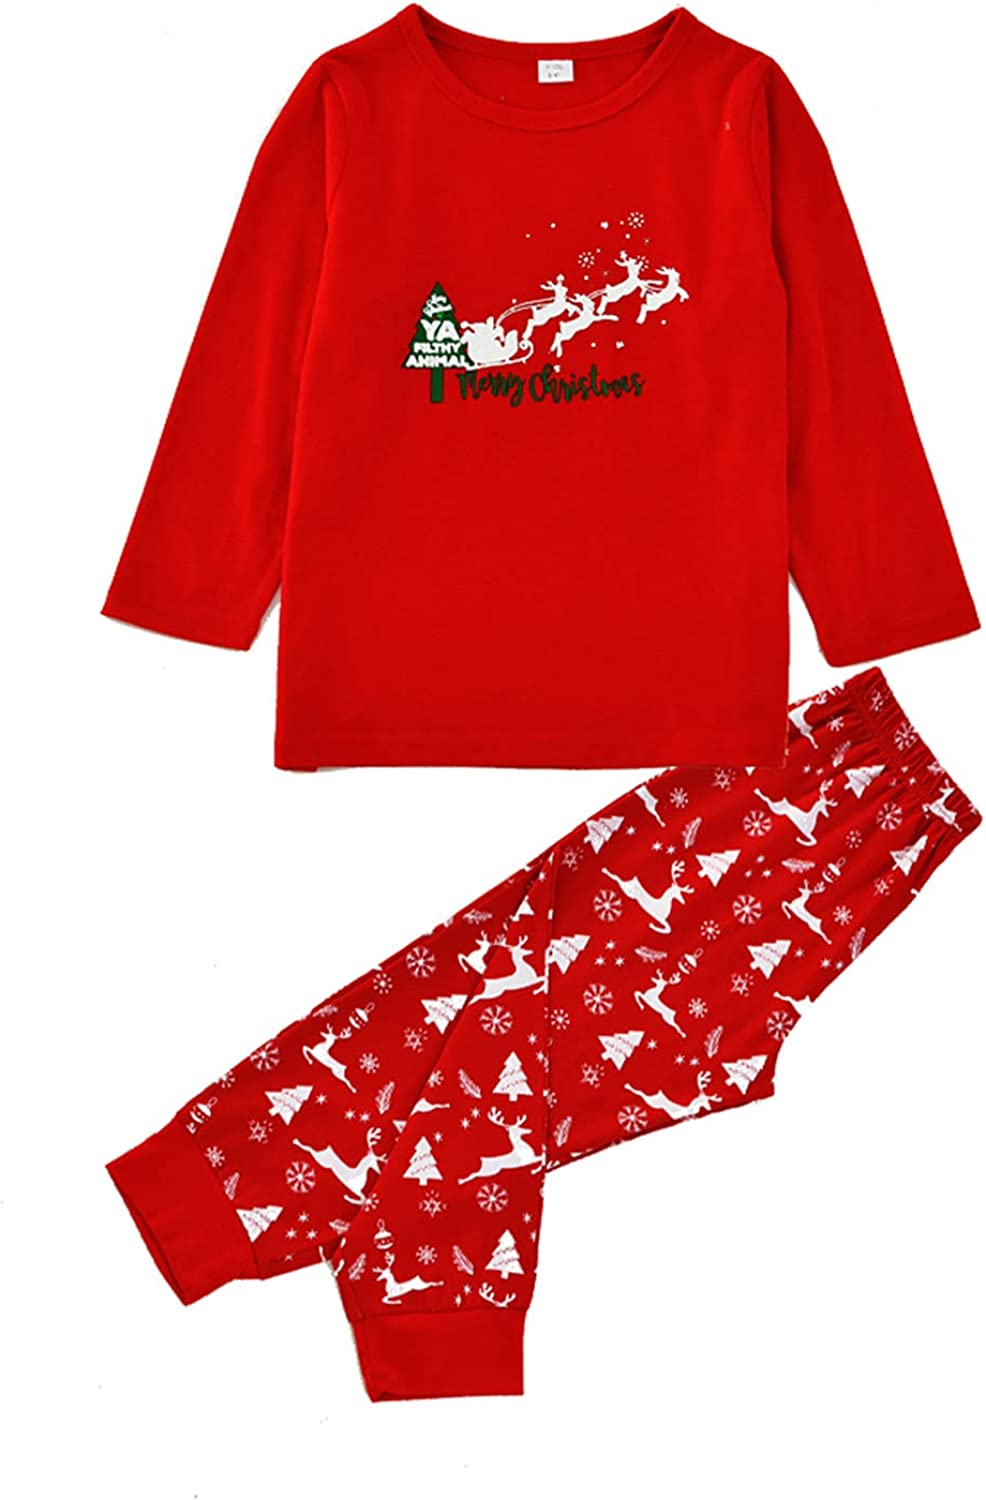 Matching Christmas Outfits for Family Cut Max 58% OFF New mail order Pjs Mom Dad Loungewear